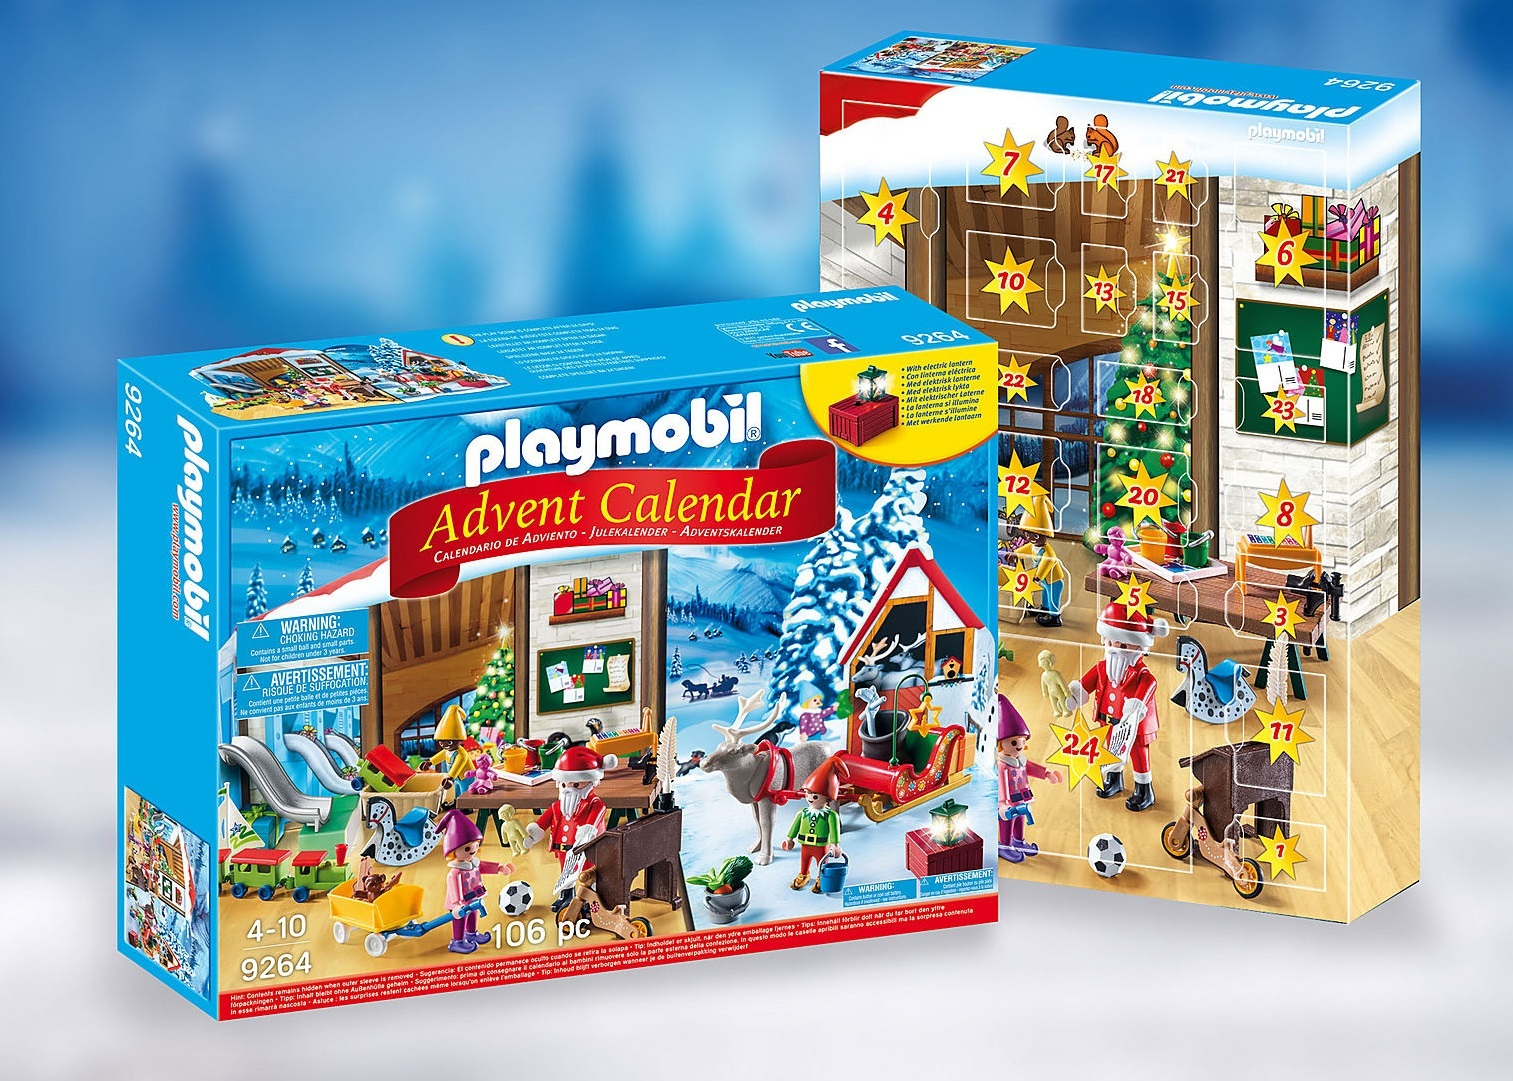 Playmobil: Advent Calendar - Santas Workshop image